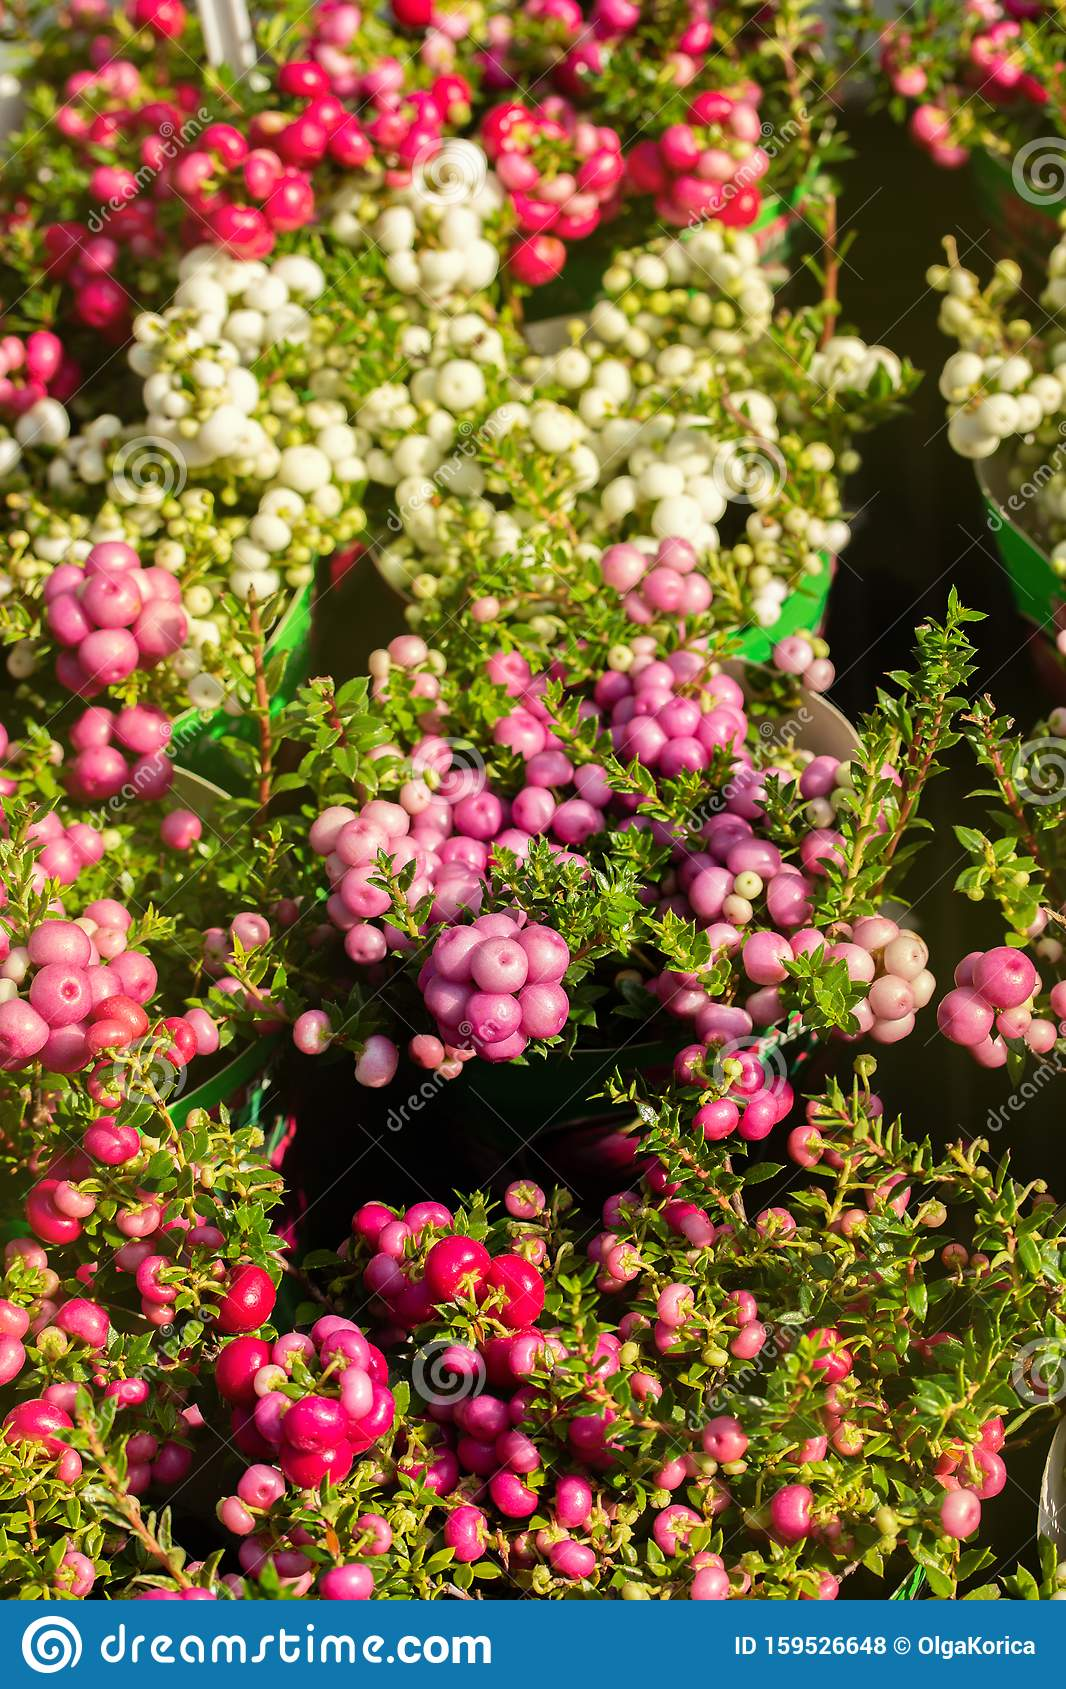 Pernettya Berries.Gaultheria Mucronata Ripened Autumn Fruits Berries White Pink Pernettya Background Vertical Stock Photo Image Of Garden Beautiful 159526648